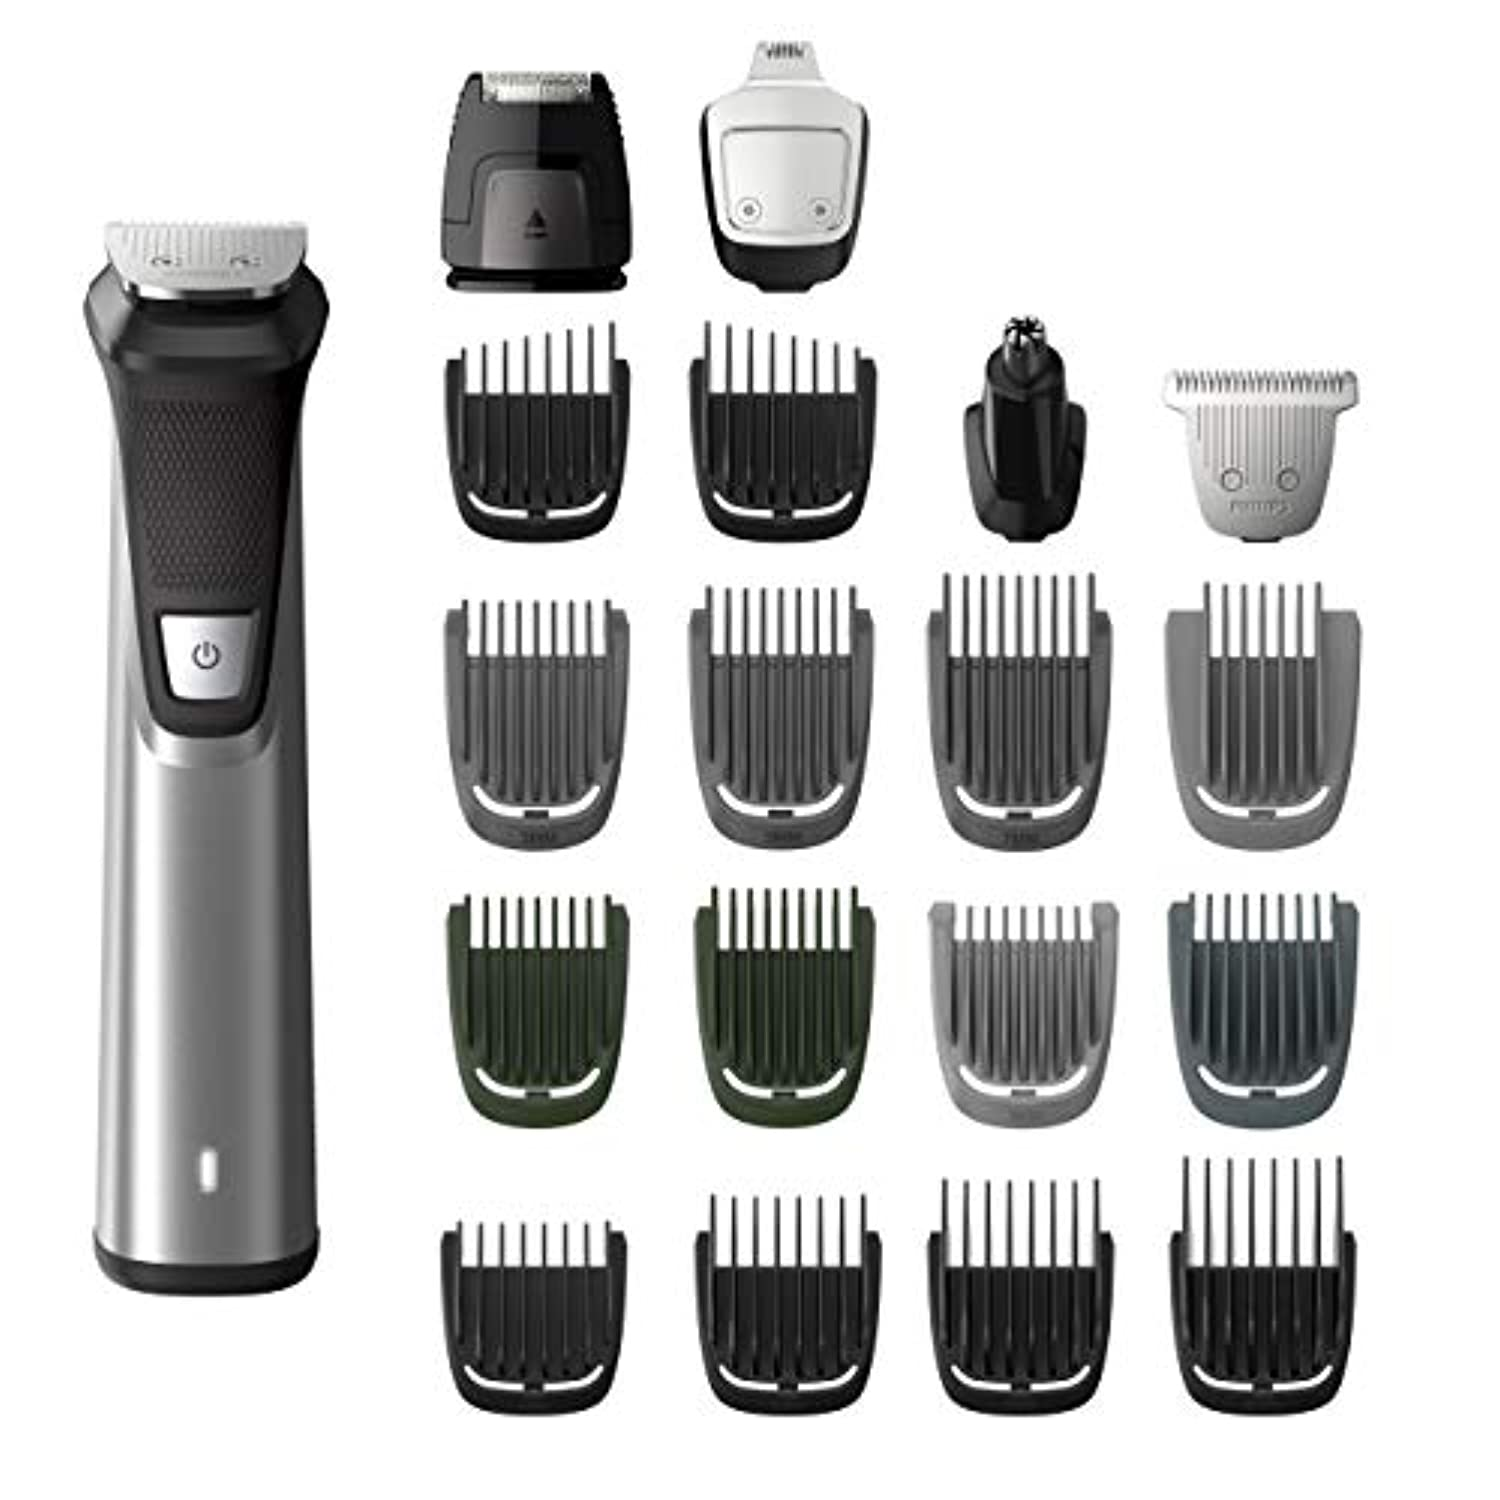 Philips Norelco MG7750/49 Multigroom 7000 Face Styler and Grooming Kit, 23 Trimming Pieces, DualCut Technology...